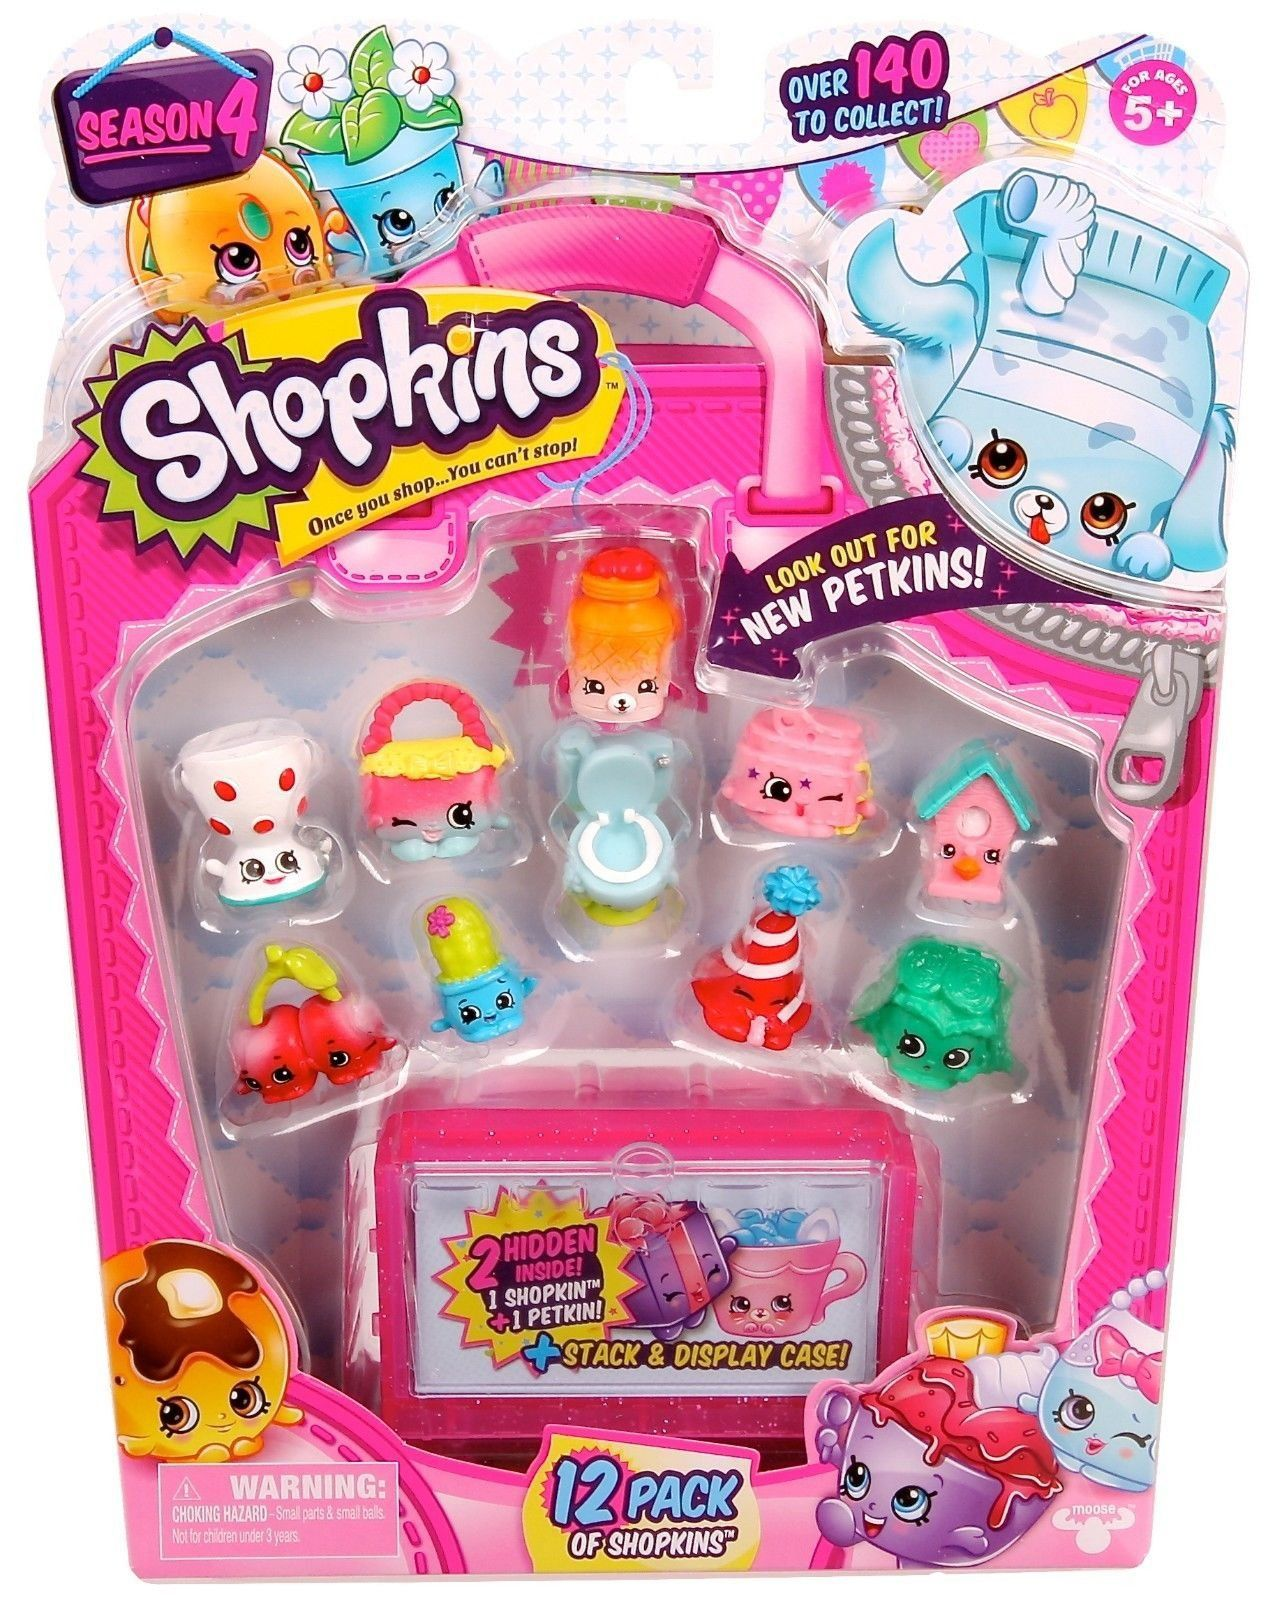 Cheap Shopkins Season 4- where to buy Shopkins Season 4